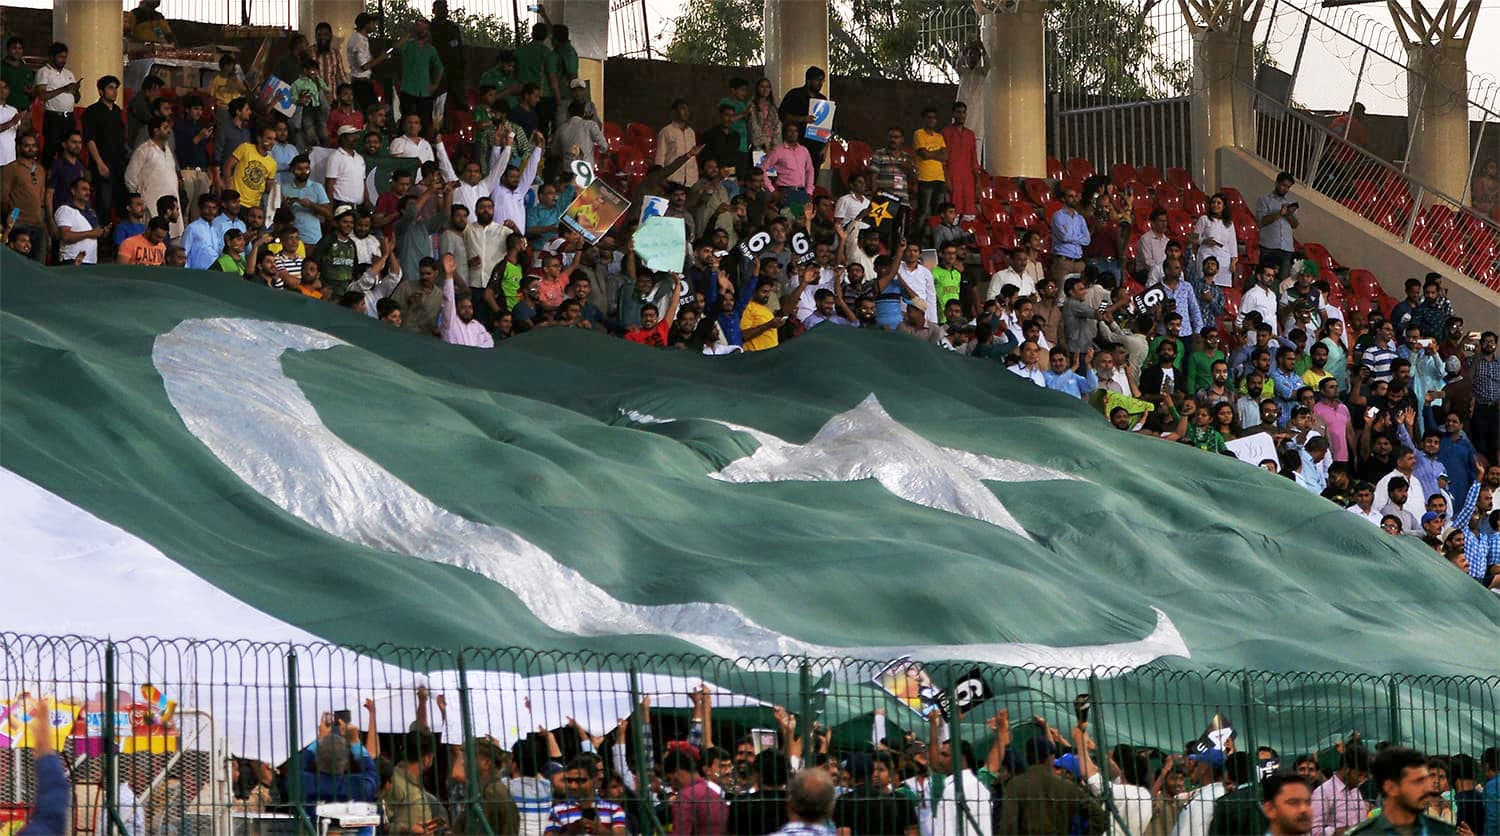 Pakistani spectators display a huge national flag at the Gaddafi Cricket Stadium in Lahore before the start of the third and final match between the World XI and Pakistan. -AFP